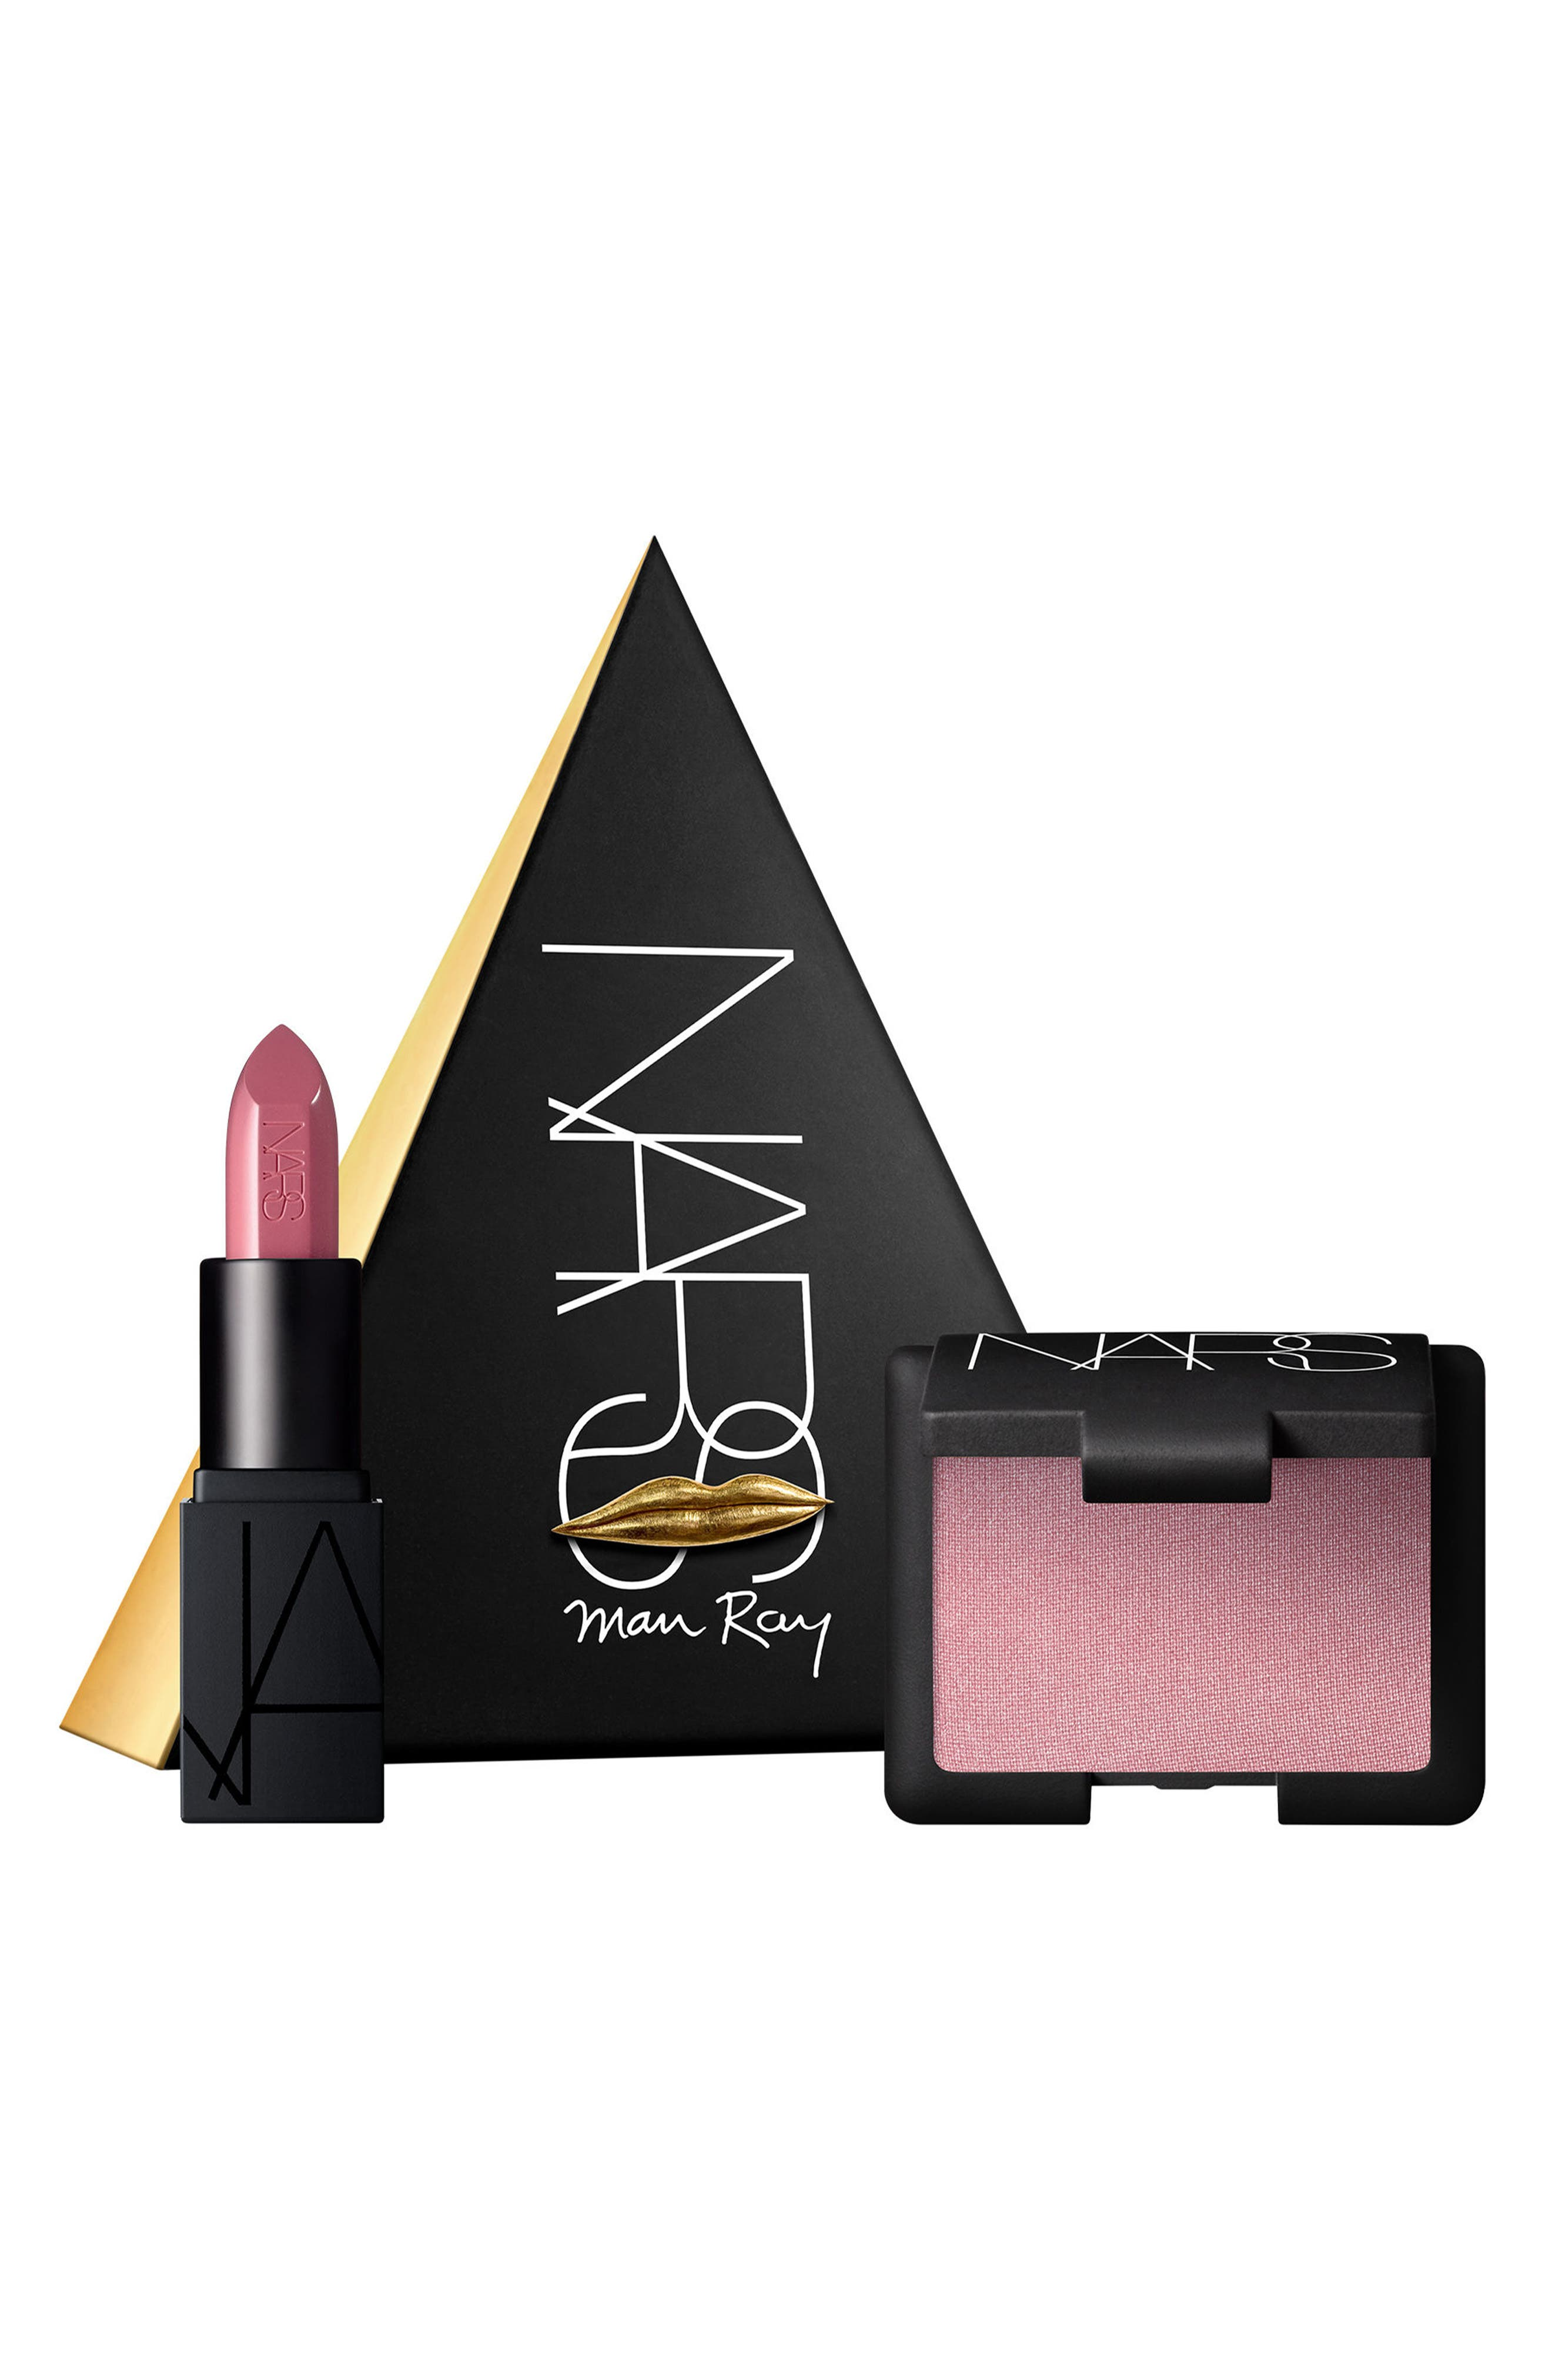 NARS Impassioned Love Triangle Set ($35 Value)